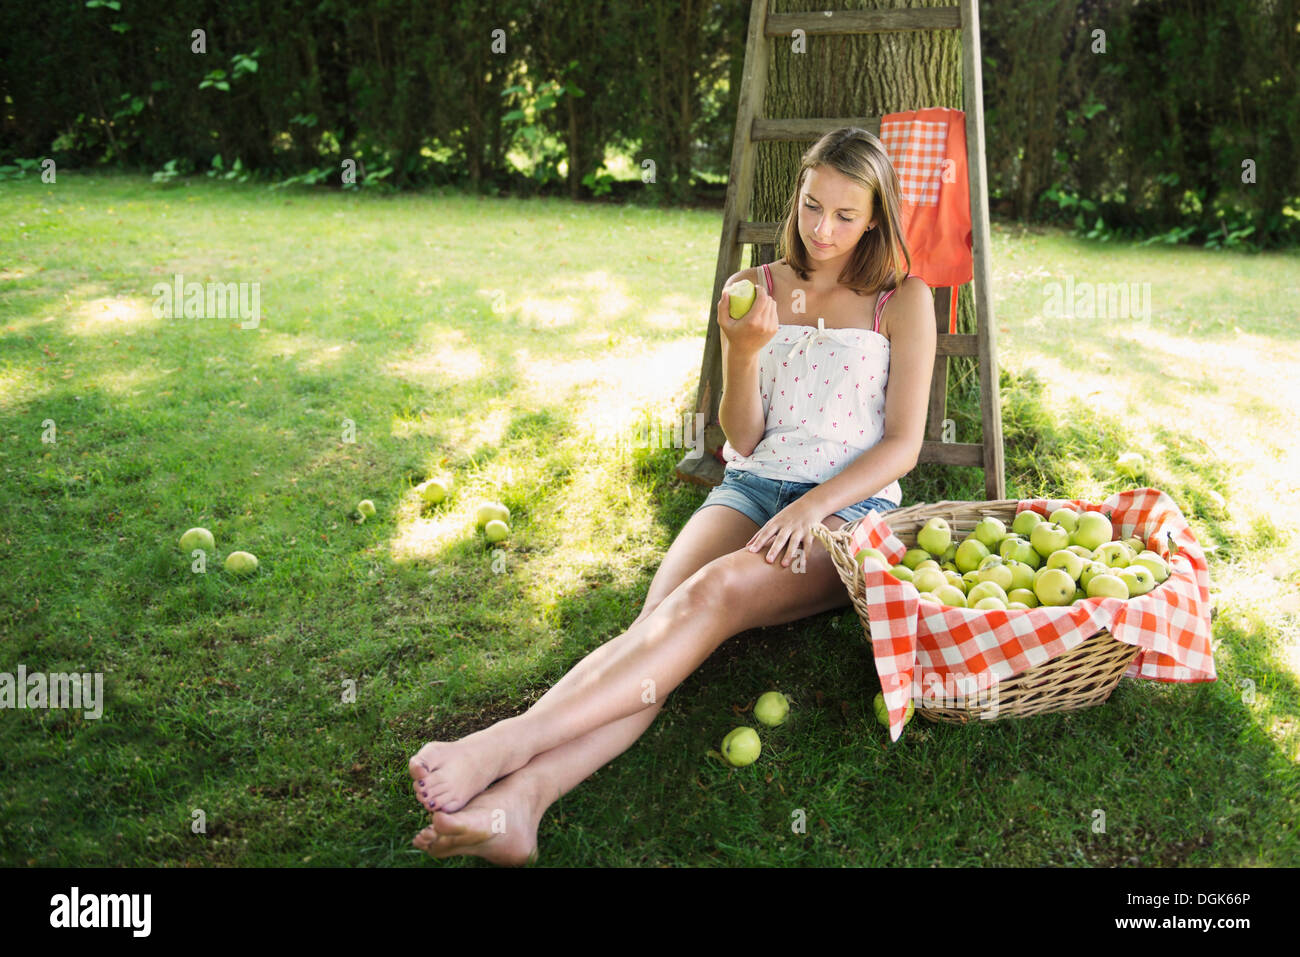 Adolescent girl sitting in orchard eating an apple Stock Photo